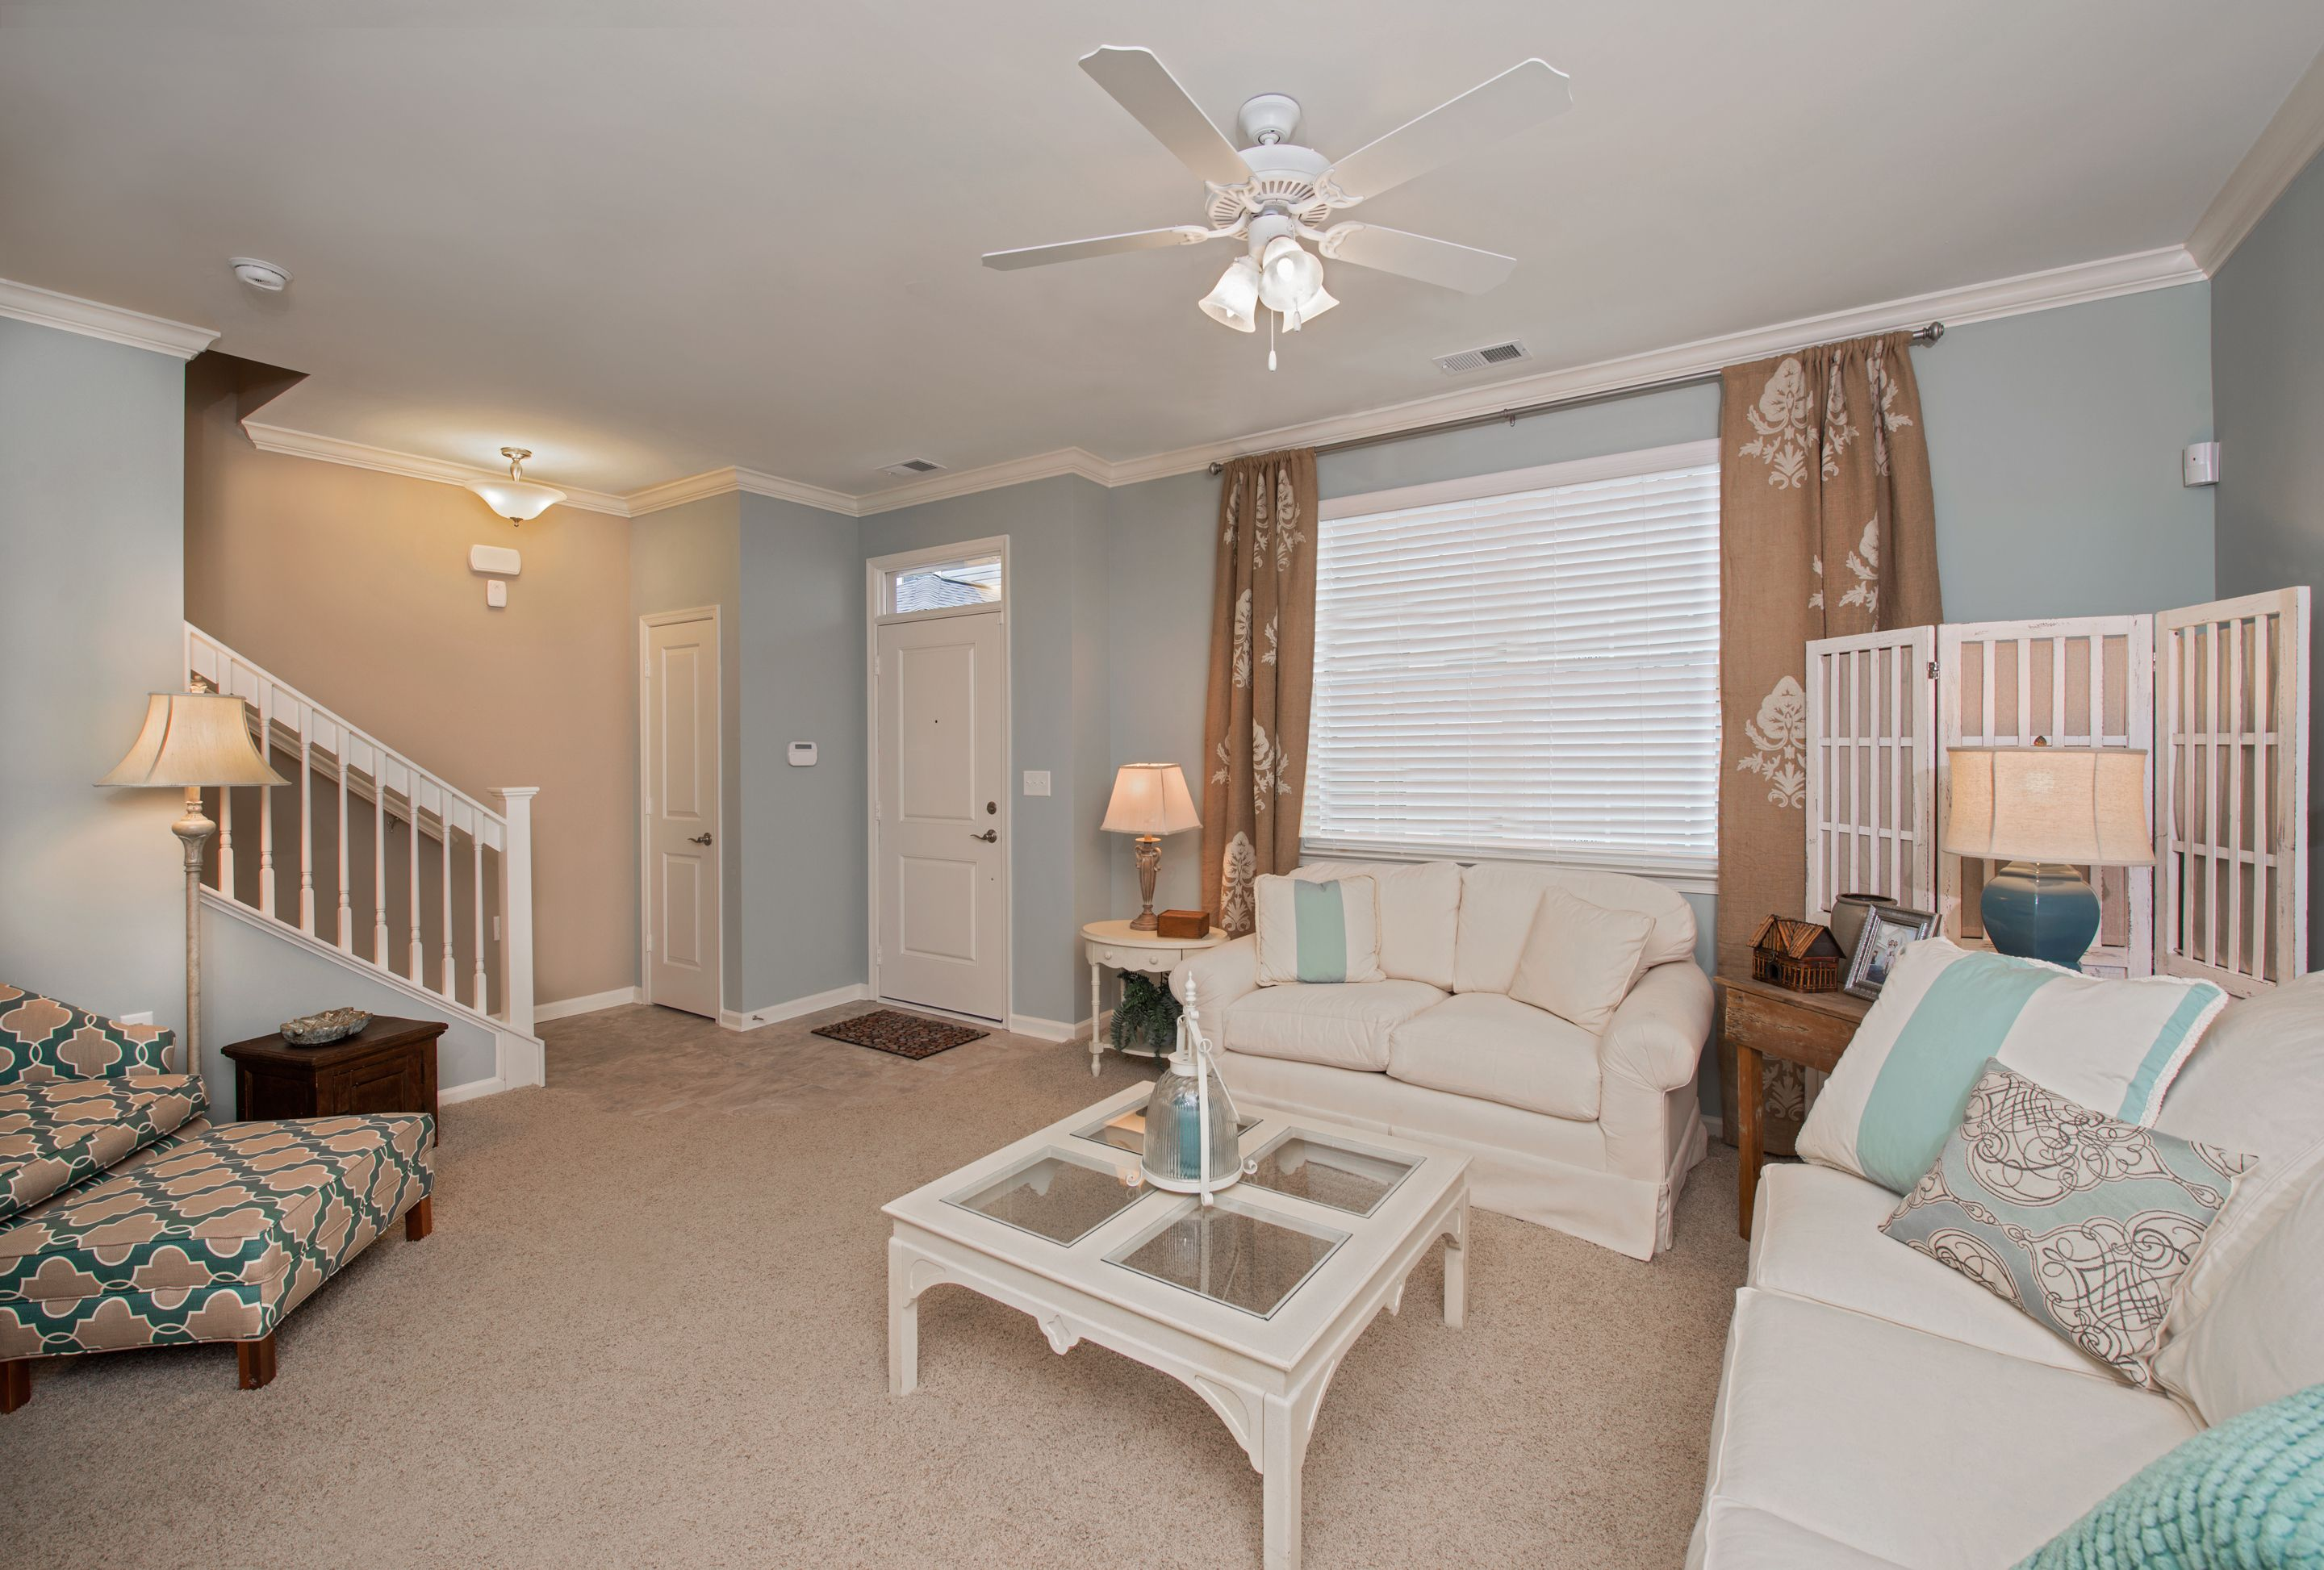 New Homes Townhomes Apartments New Homes Home And Family Home